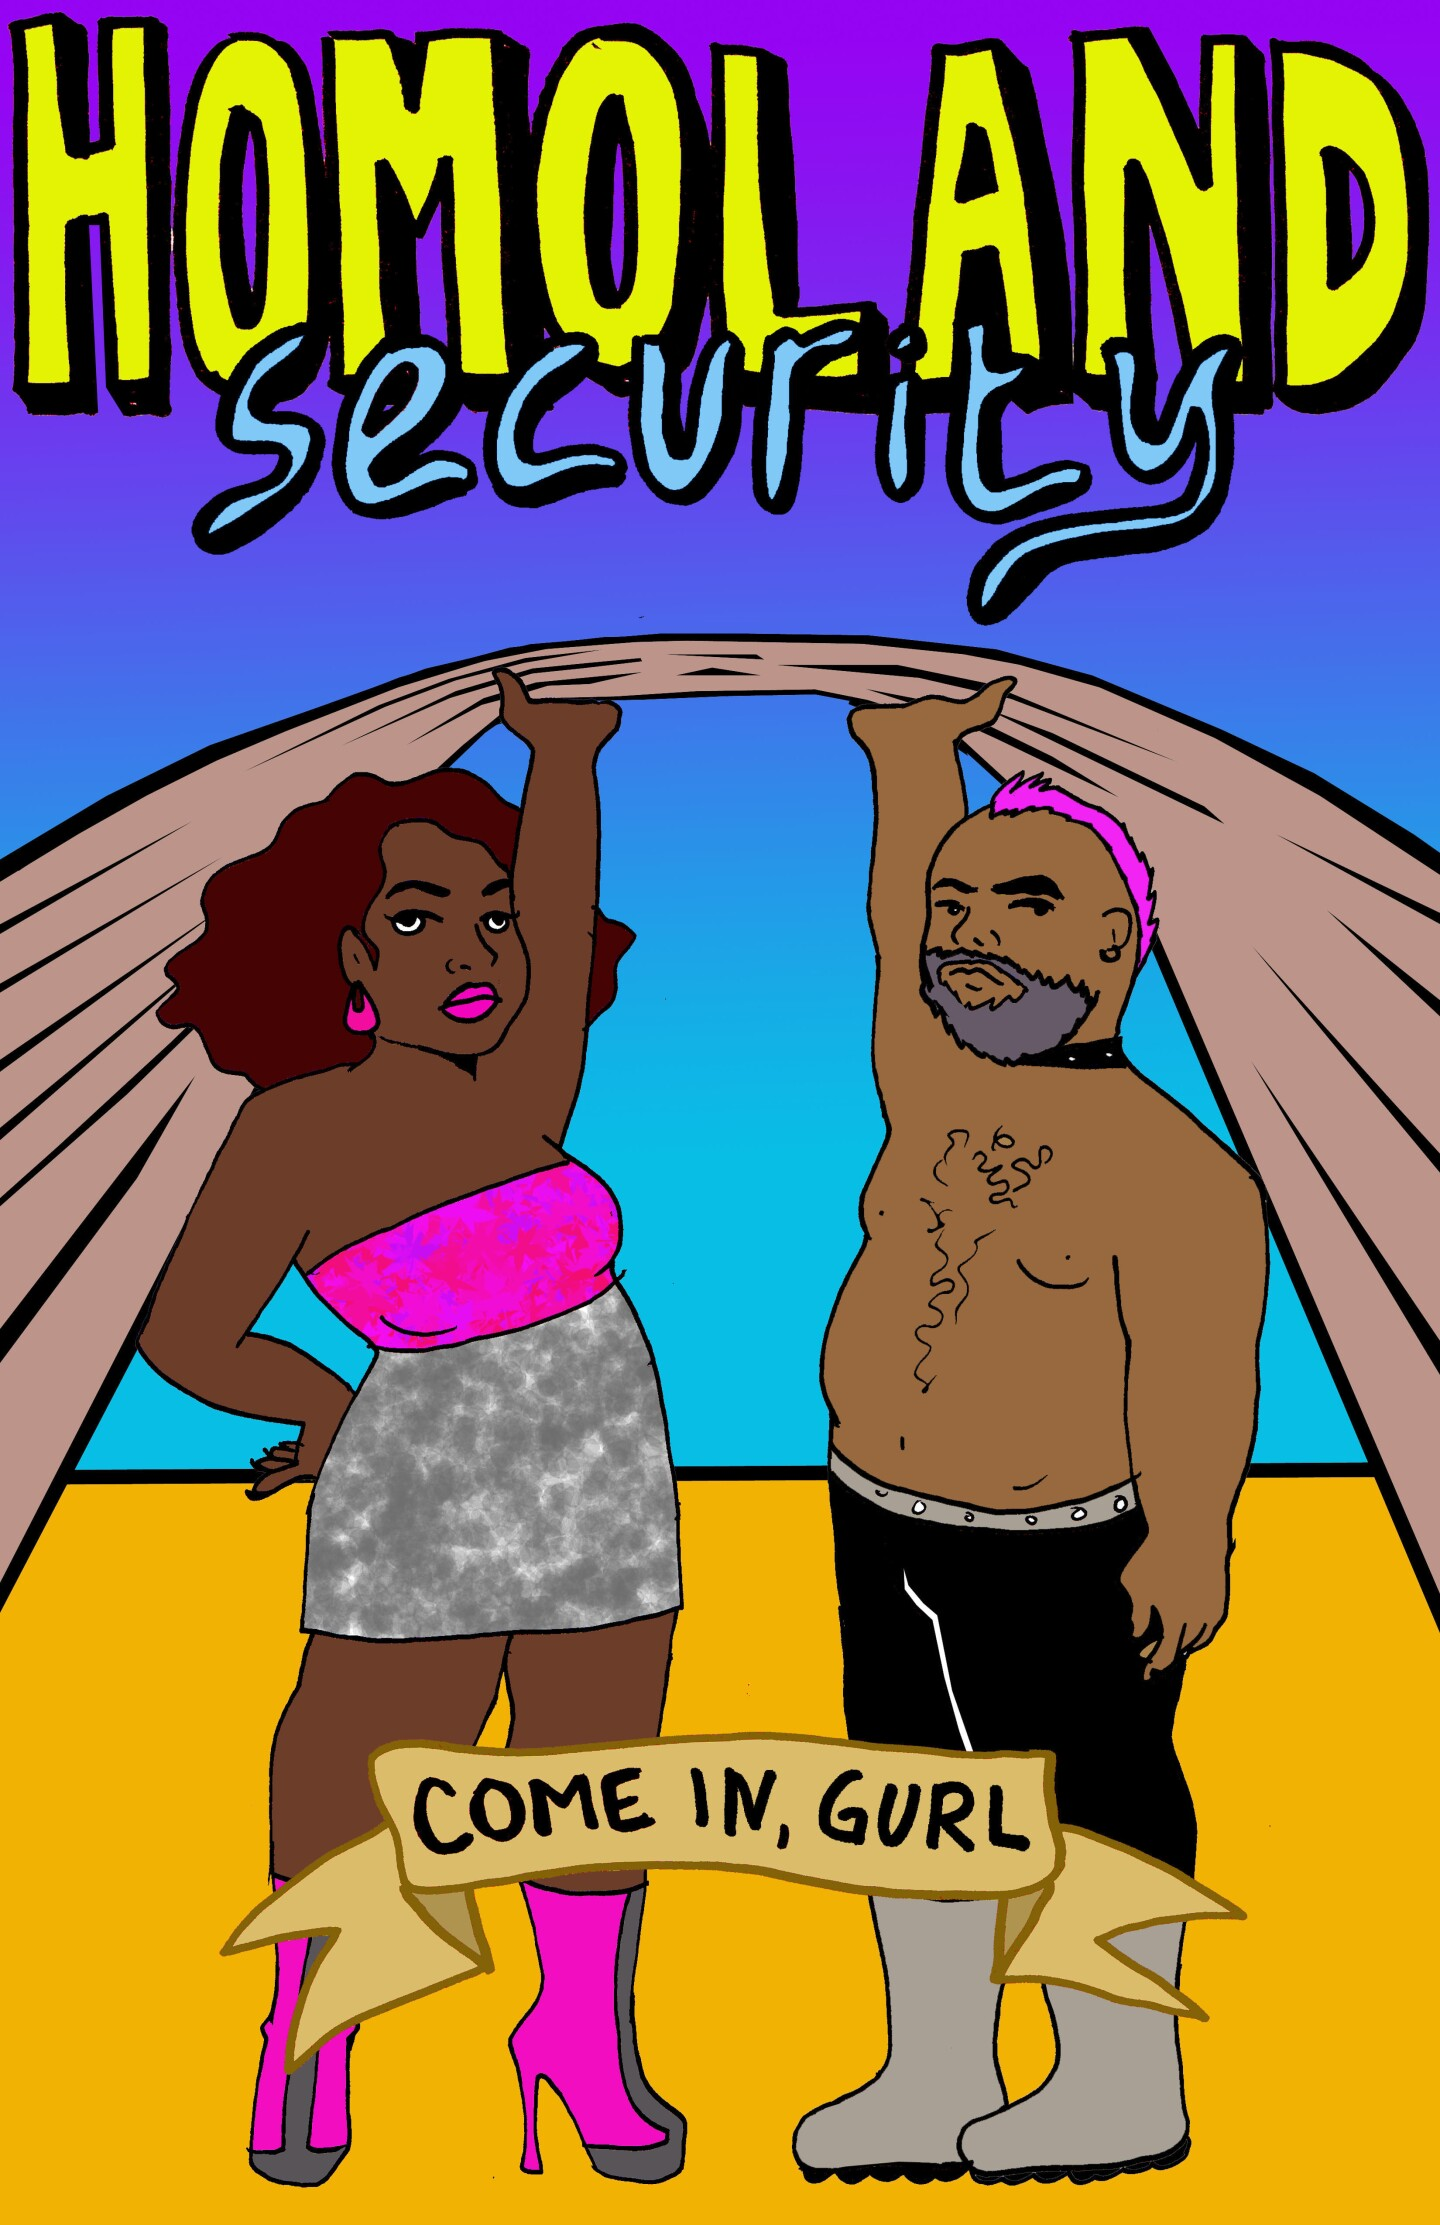 """An illustration by Julio Salgado depicts two people of color lifting up a curtain. At their knees is a banner that reads, """"Come in, gurl."""" Above them, in big, bold letters read: """"Homoland security."""""""